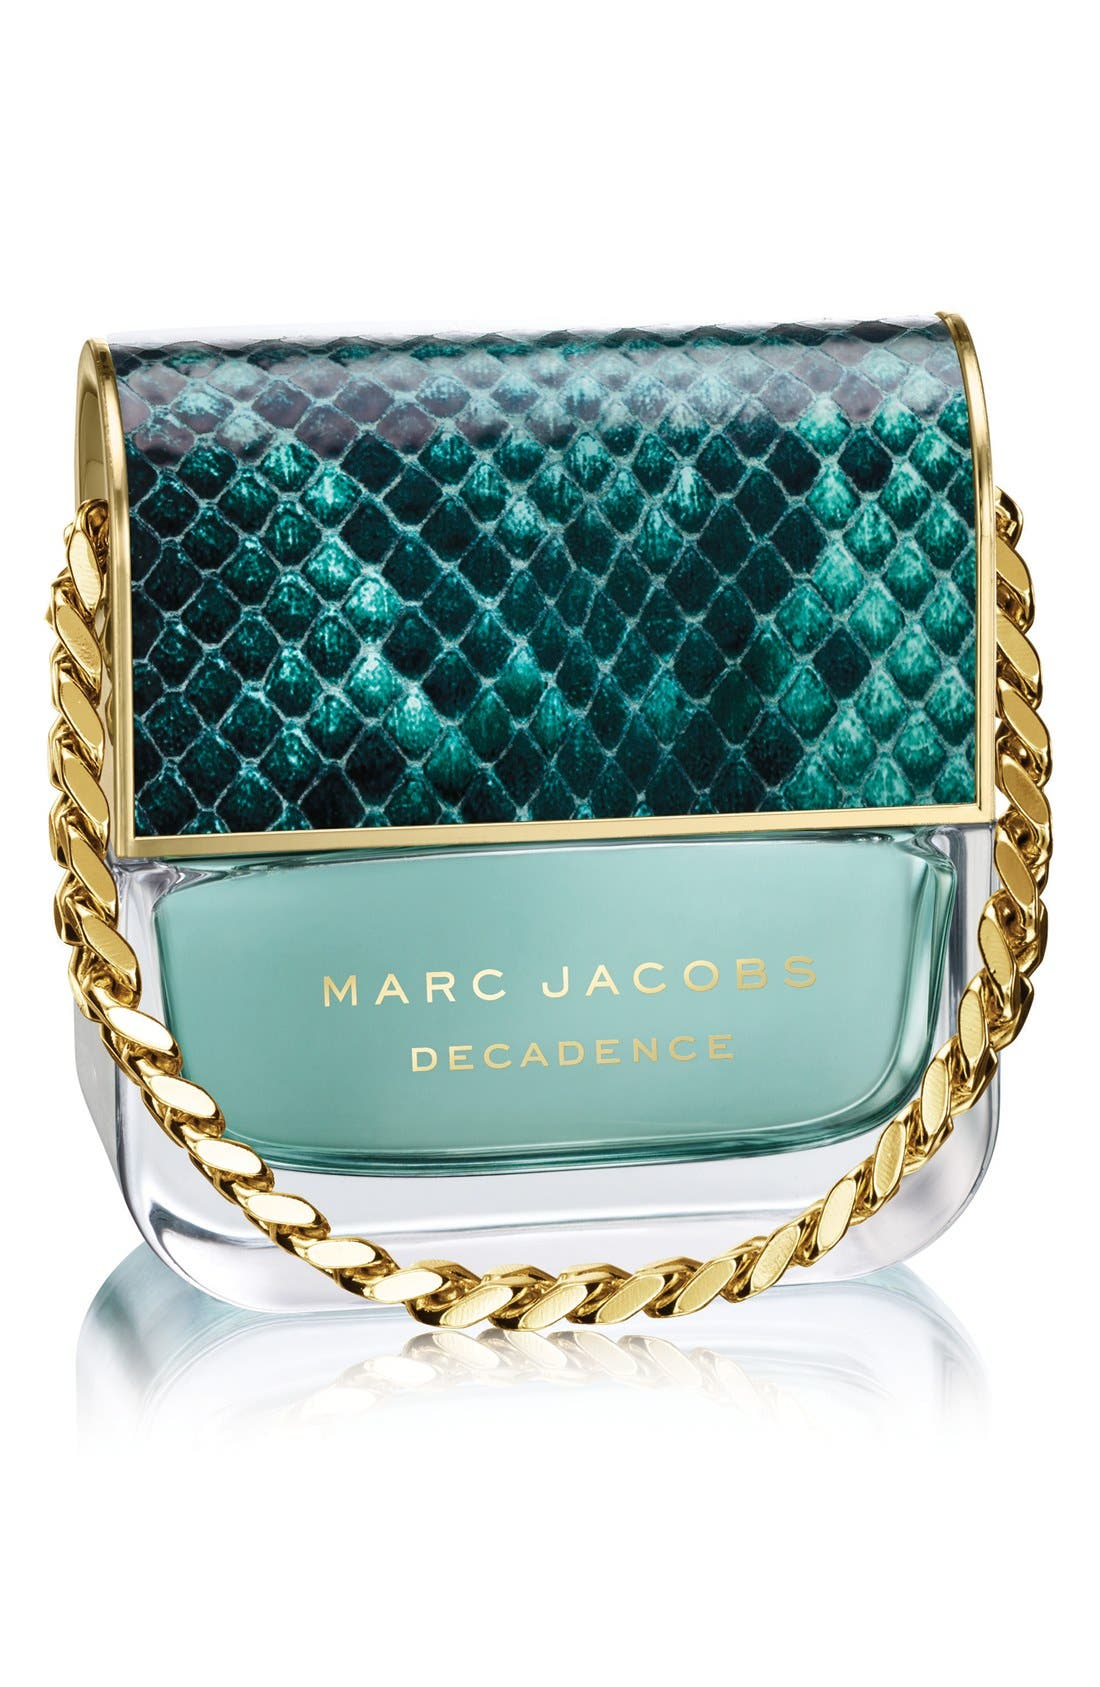 Receive a Complimentary Gift with any Gift Set purchase from the MARC JACOBS fragrance collection Beauty - Shop All Brands - Macy's Find this Pin and more on Gift w/ Purchase & Packaging by Huanchao Tang. Receive a Complimentary 2-Pc. Gift with any large spray purchase from the MARC JACOBS fragrance collection.